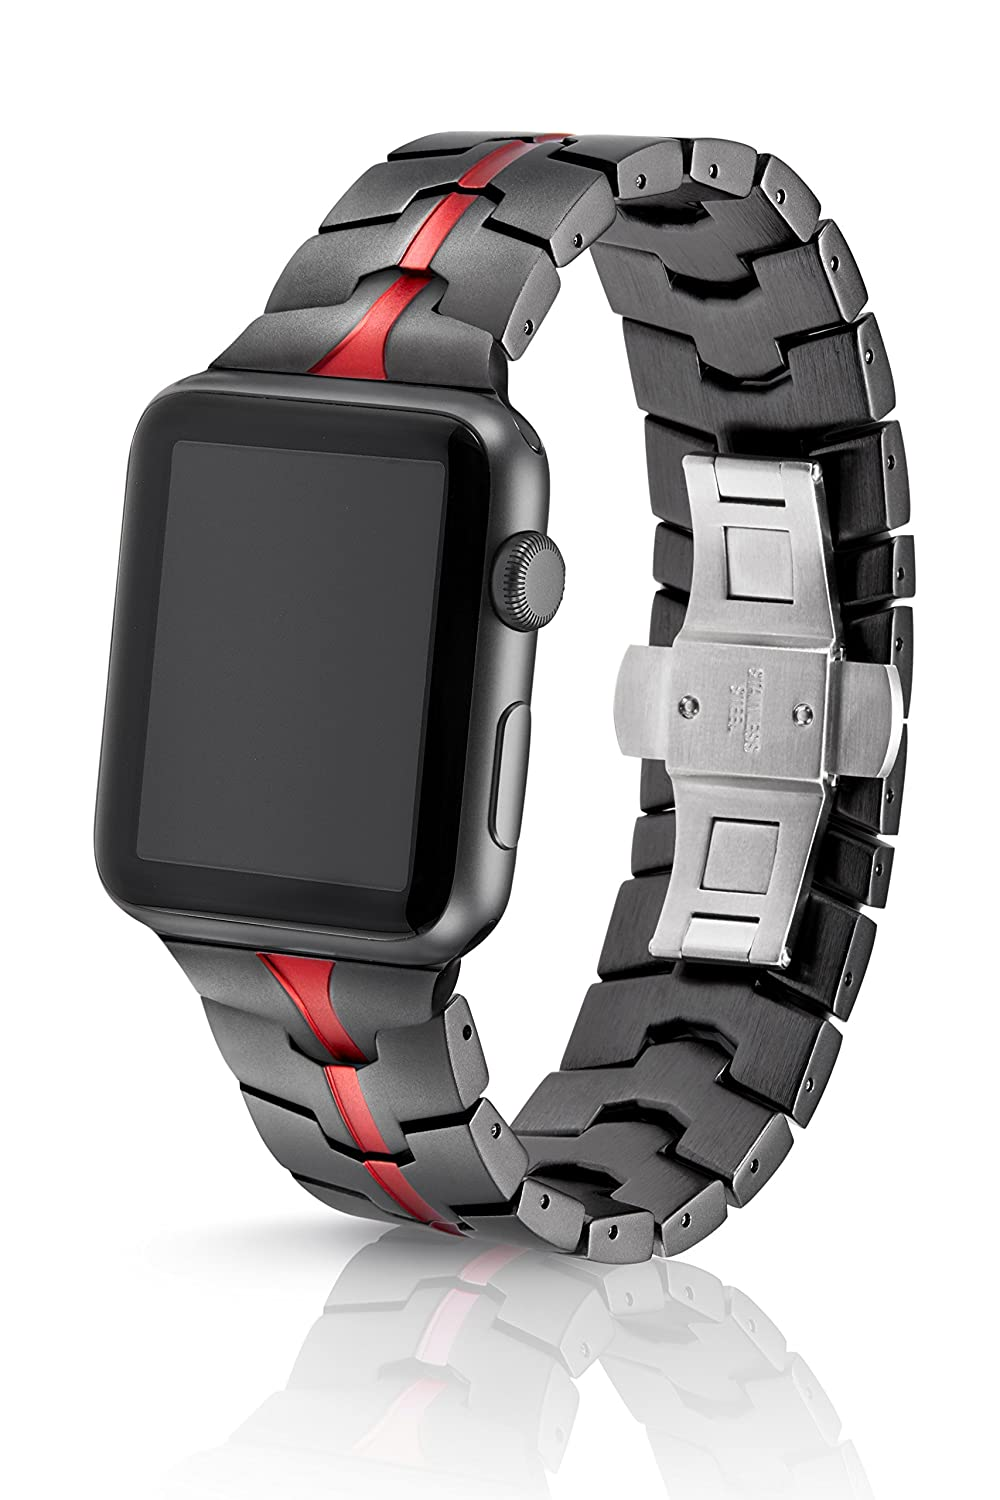 42/44mm JUUK Ruby Grey Vitero Premium Watch Band Made for The Apple Watch, Using Aircraft Grade, Hard Anodized 6000 Series Aluminum with a Solid Stainless Steel Butterfly deployant Buckle (Matte)